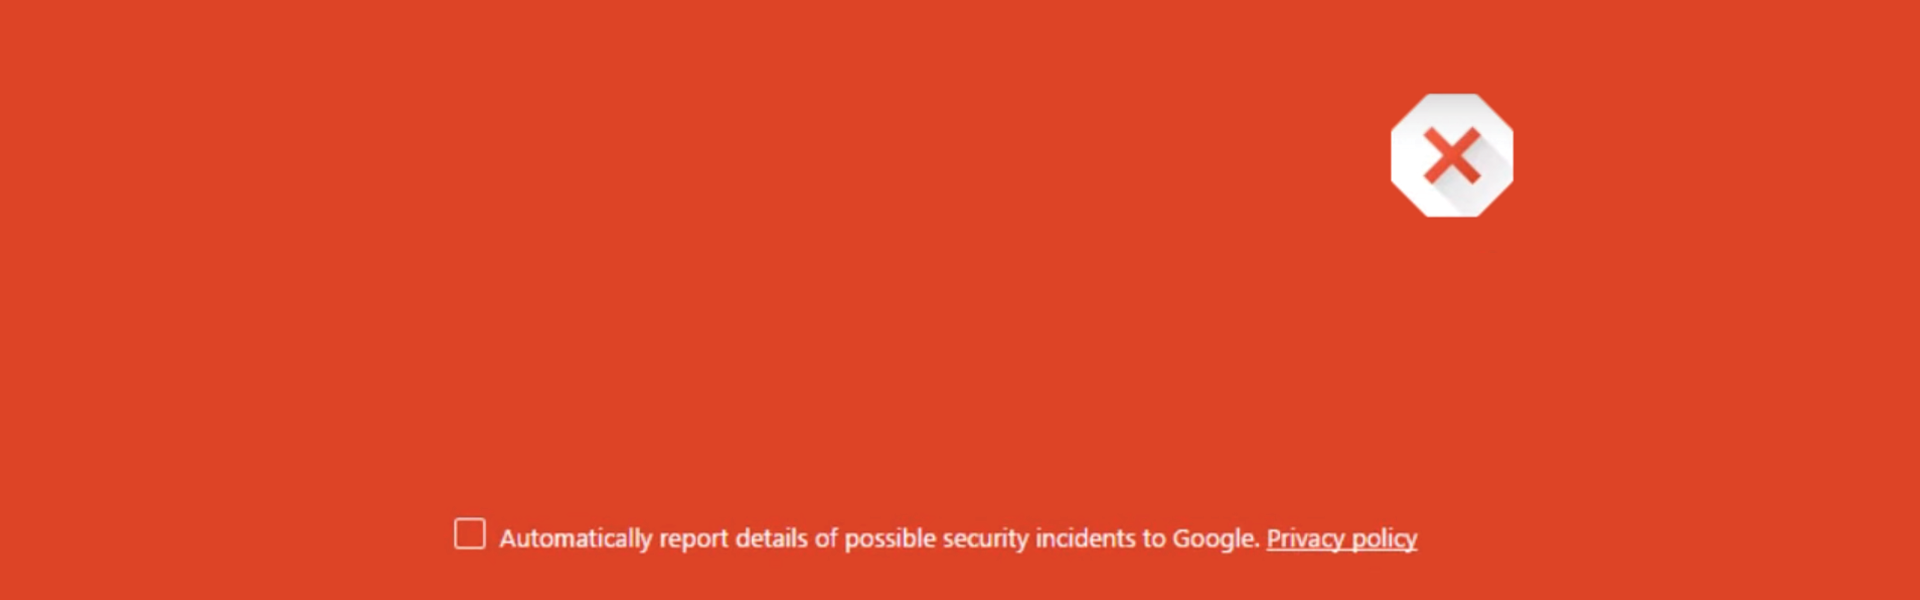 Hacked Website? Don't Panic. Here's Our Comprehensive Guide